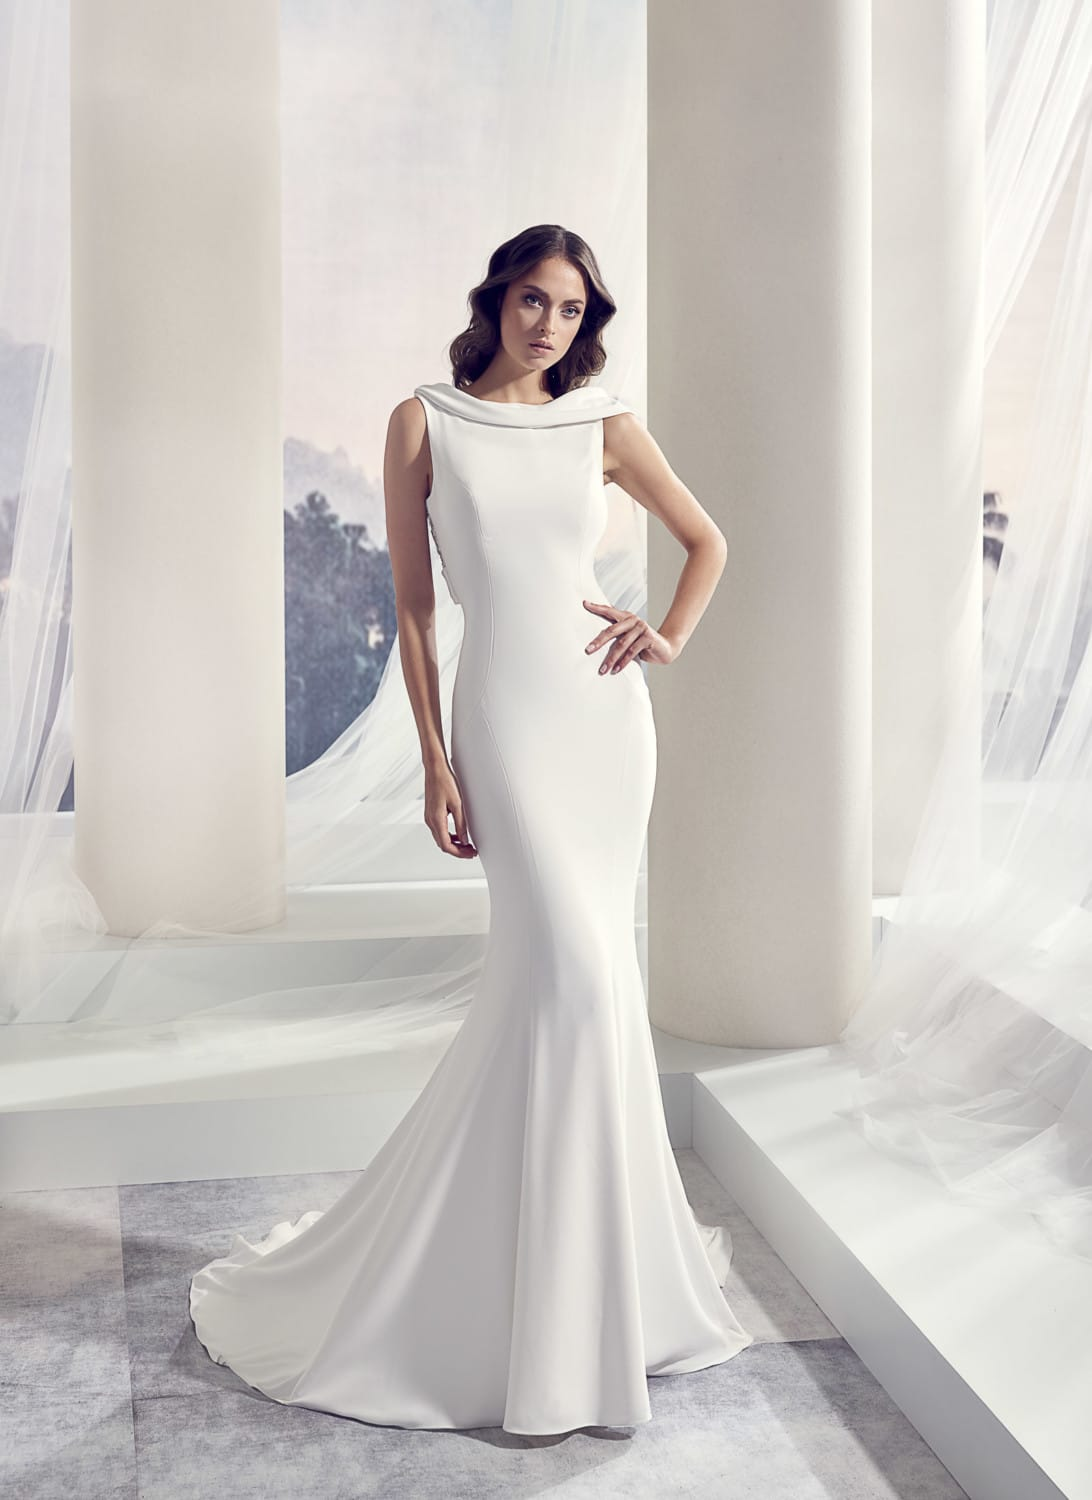 Modeca wedding dress sell my wedding dress online sell for Where to sell wedding dresses